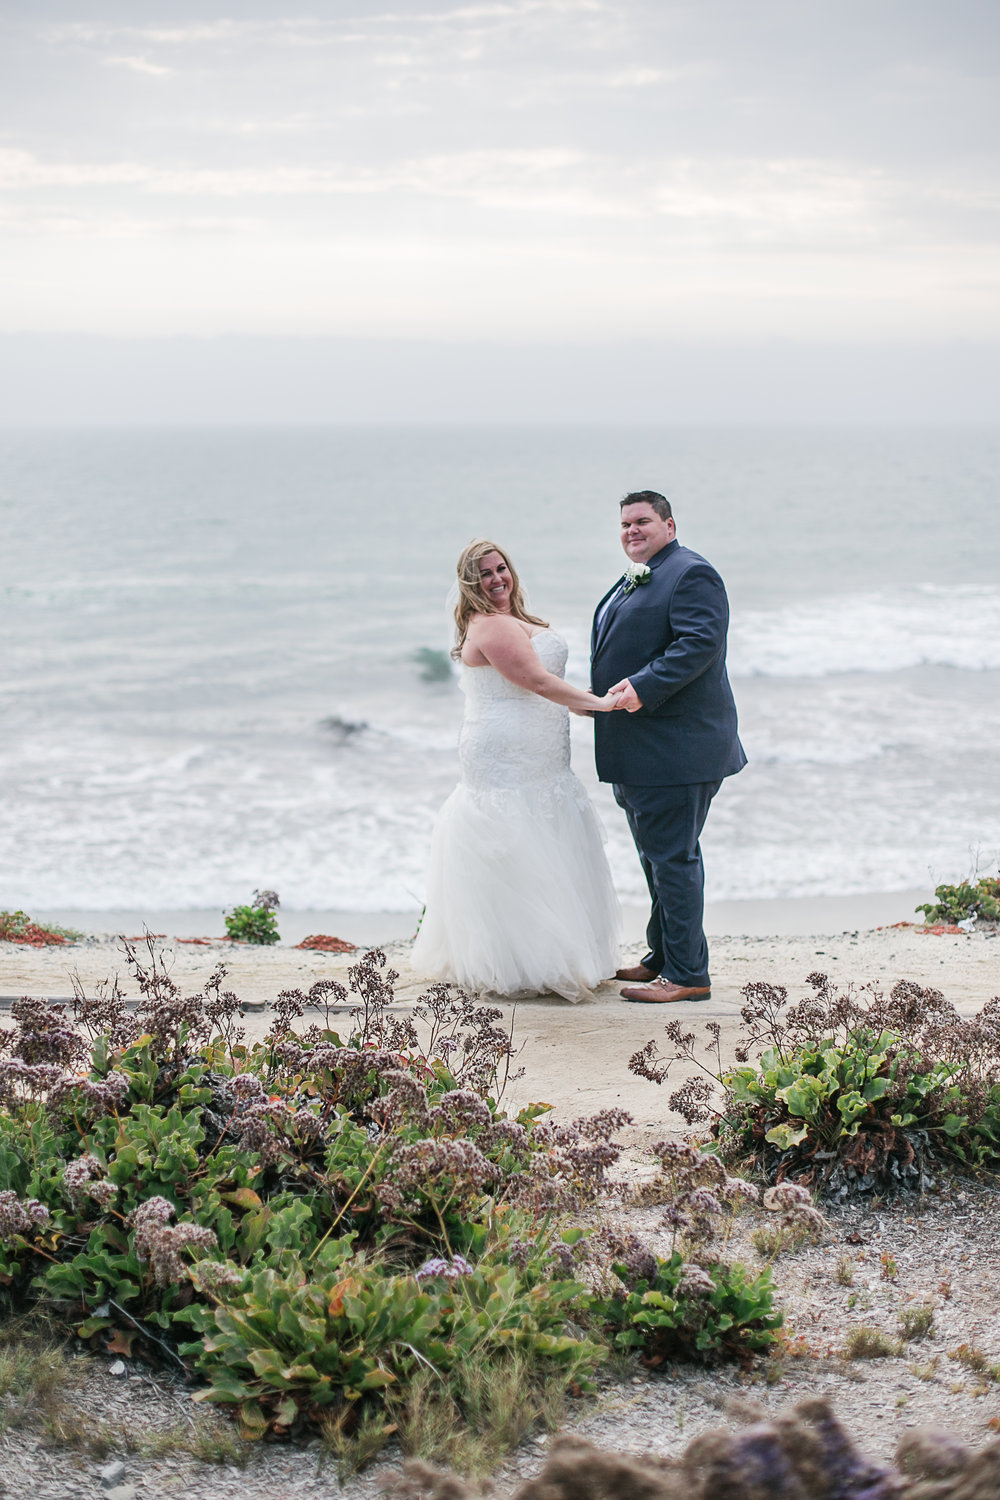 Jen_&_Mike_Del_Mar_Powerhouse_Wedding_2017 (34 of 45).jpg